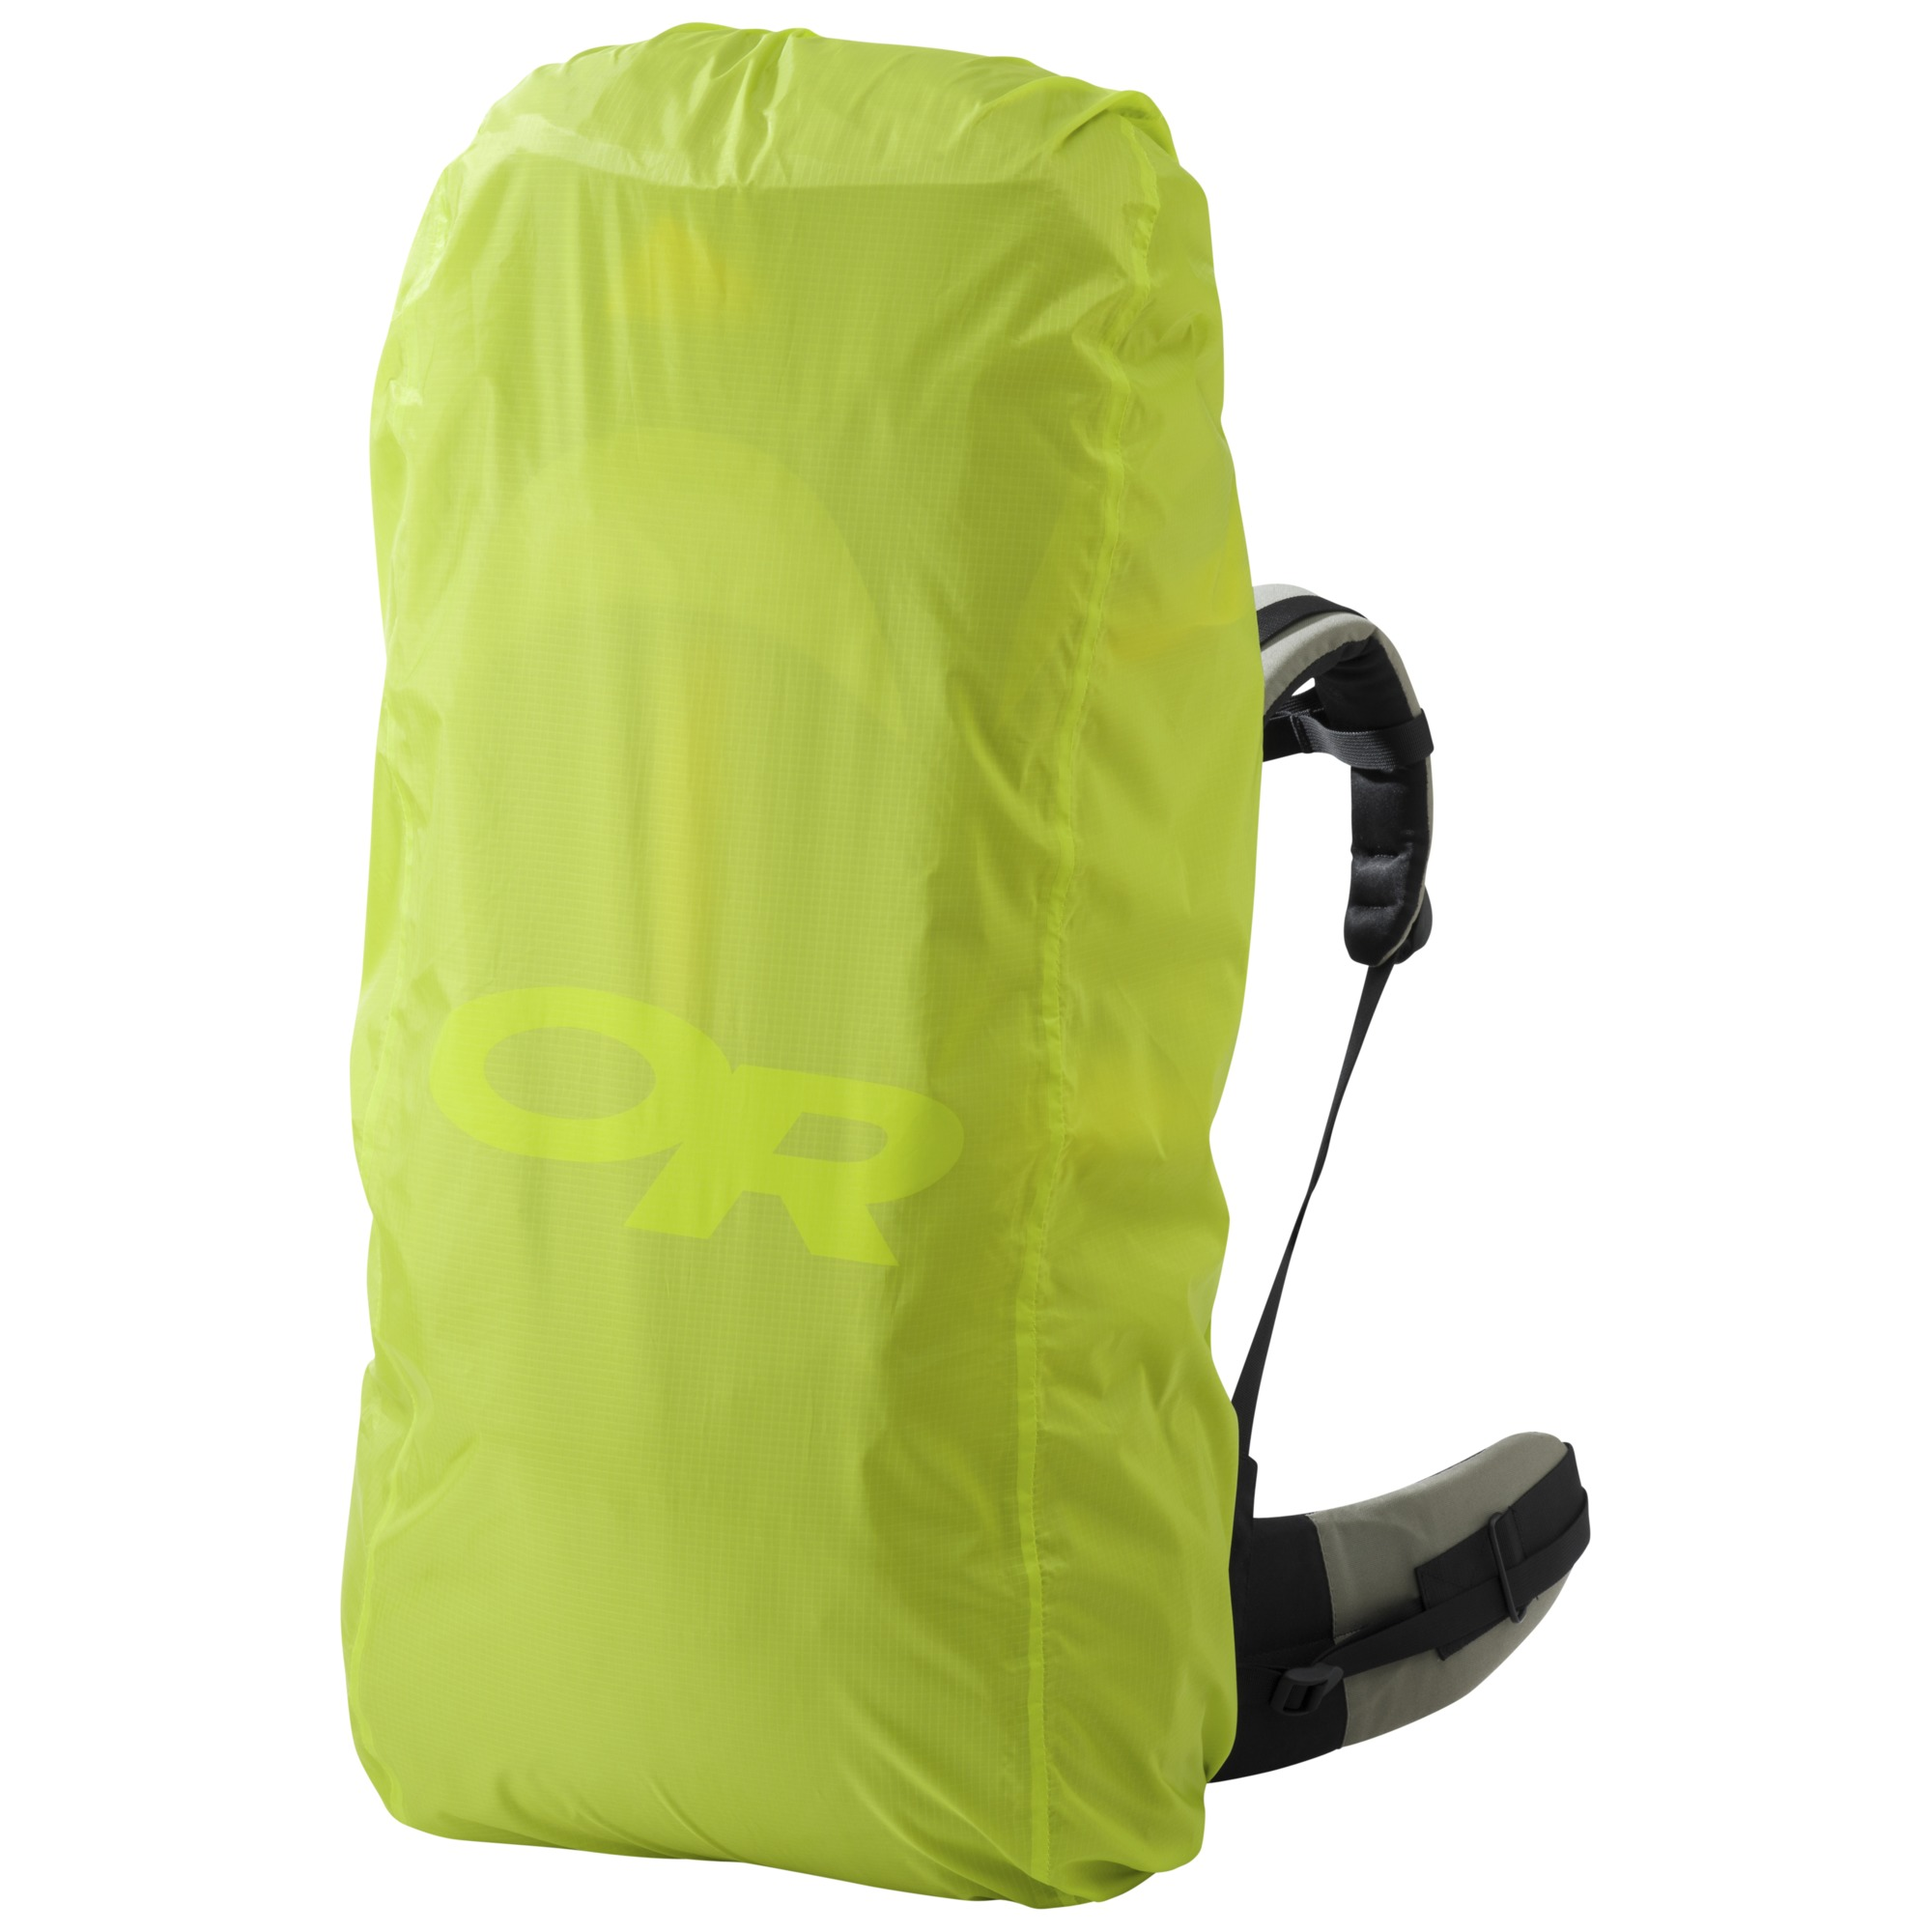 Lightweight Pack Cover – Large - lemongrass   Outdoor Research b6deb6562a